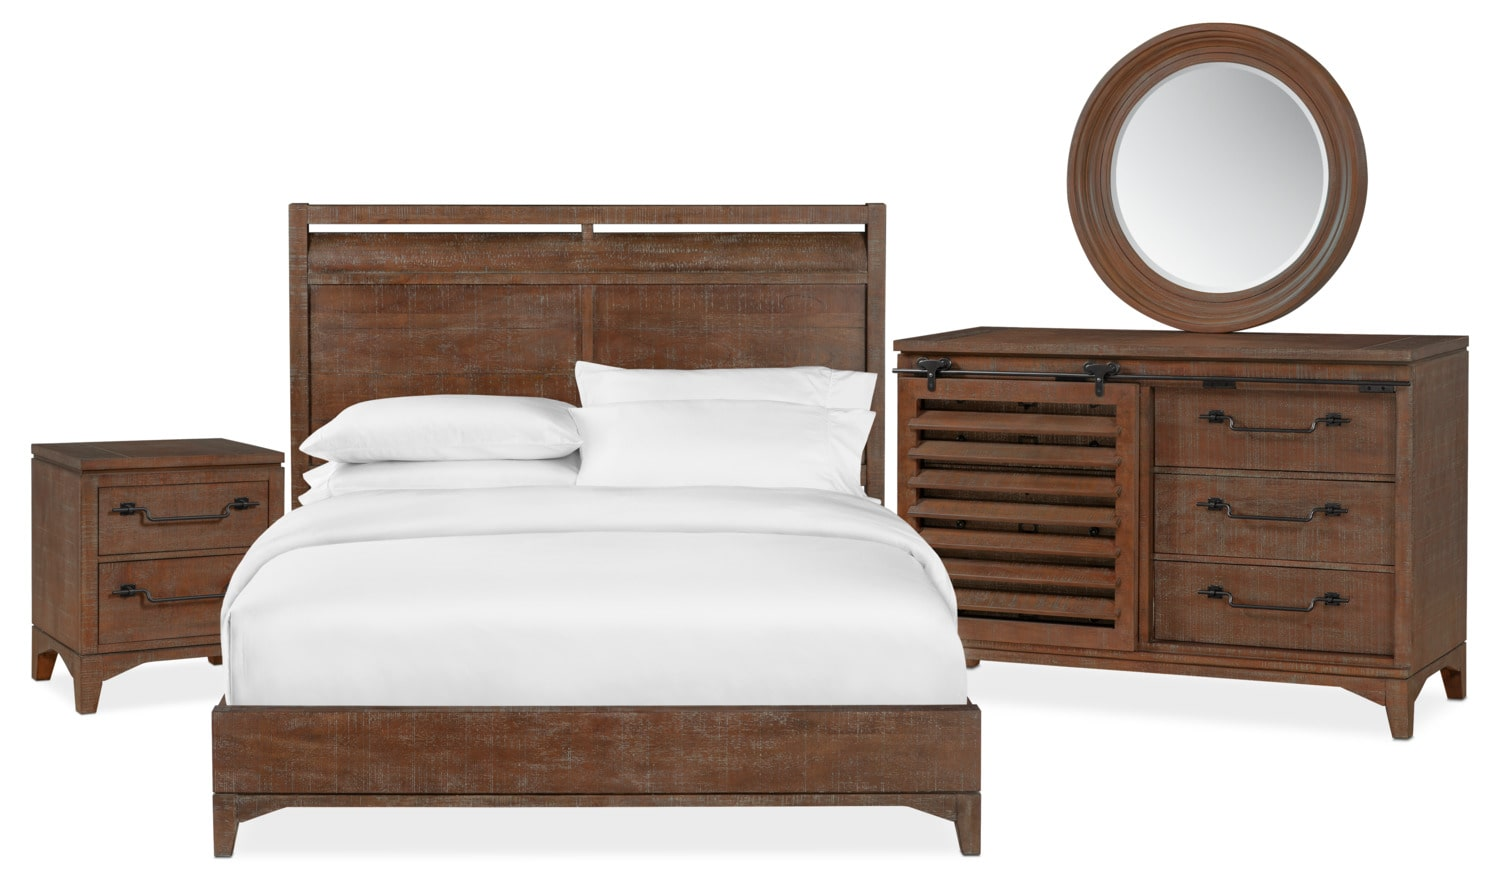 Bedroom Furniture - Gristmill 6-Piece Bedroom Set with Nightstand, Dresser and Mirror